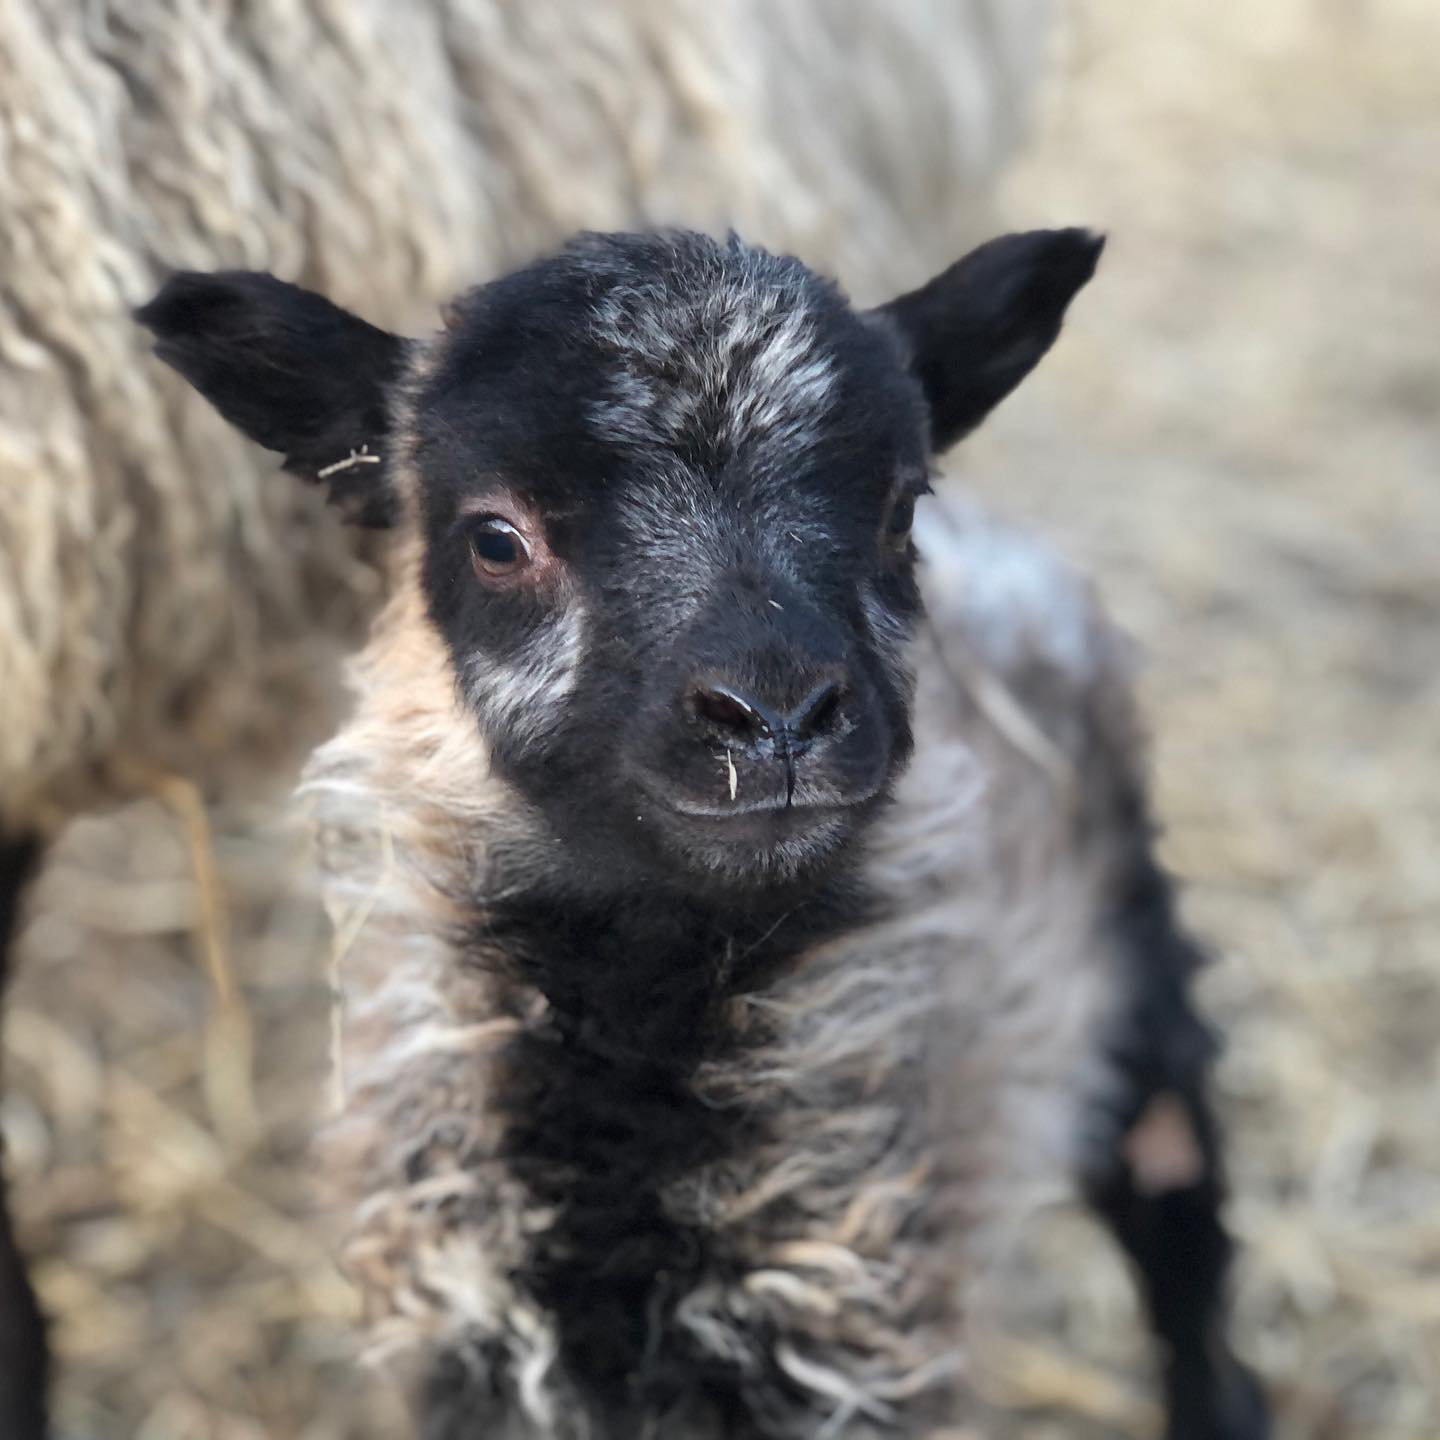 Farm Happenings for March 3, 2020